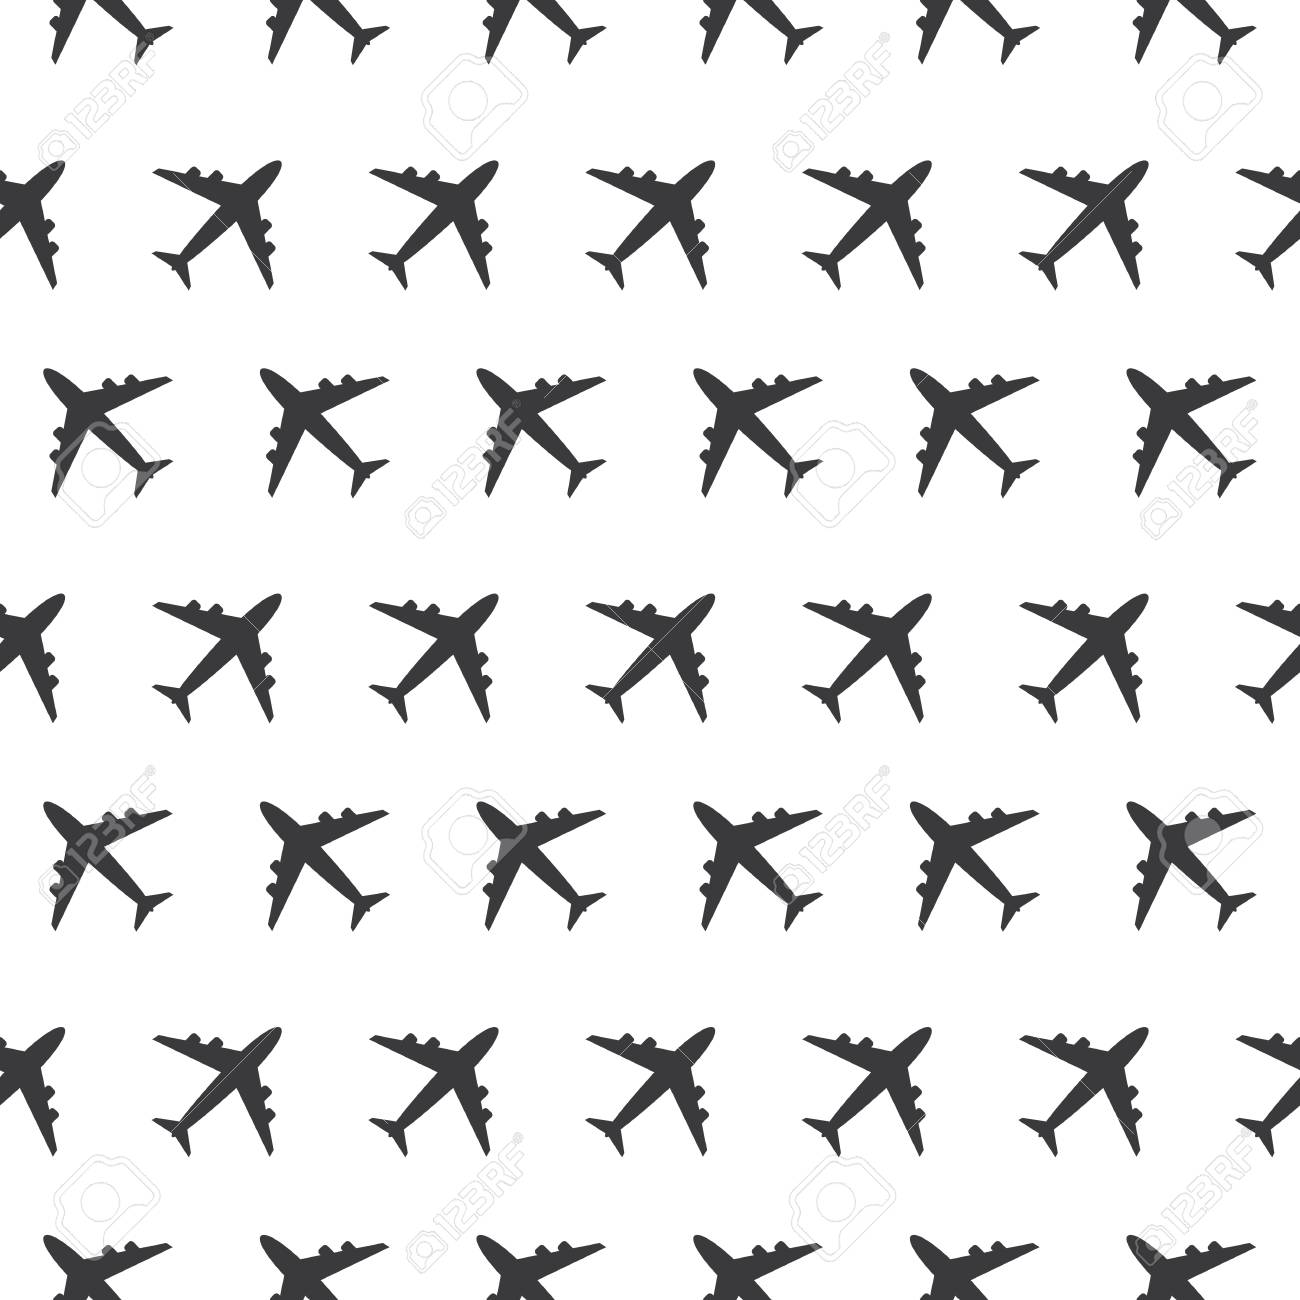 Airplane Commercial Aviation Seamless Sign Clear Pattern Silhouette